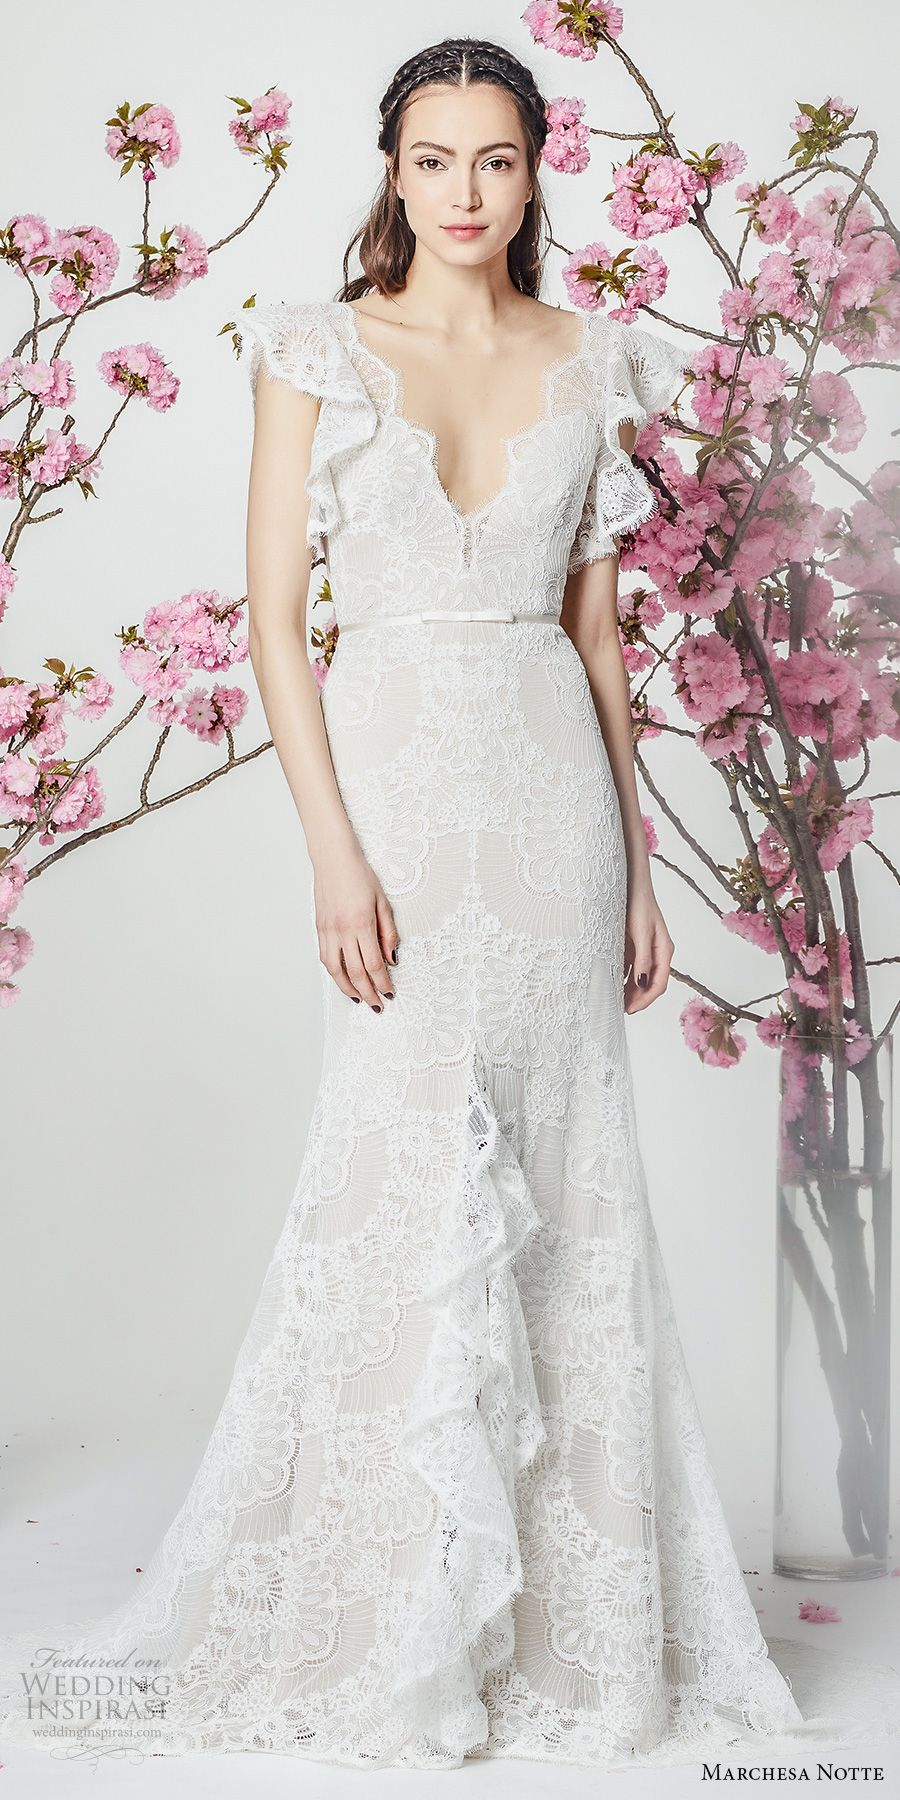 1fbc5dda8c39 marchesa notte spring 2018 bridal butterfly sleeves v neck full  embellishment elegant romantic trumpet wedding dress short train (2) mv --  Marchesa Notte ...